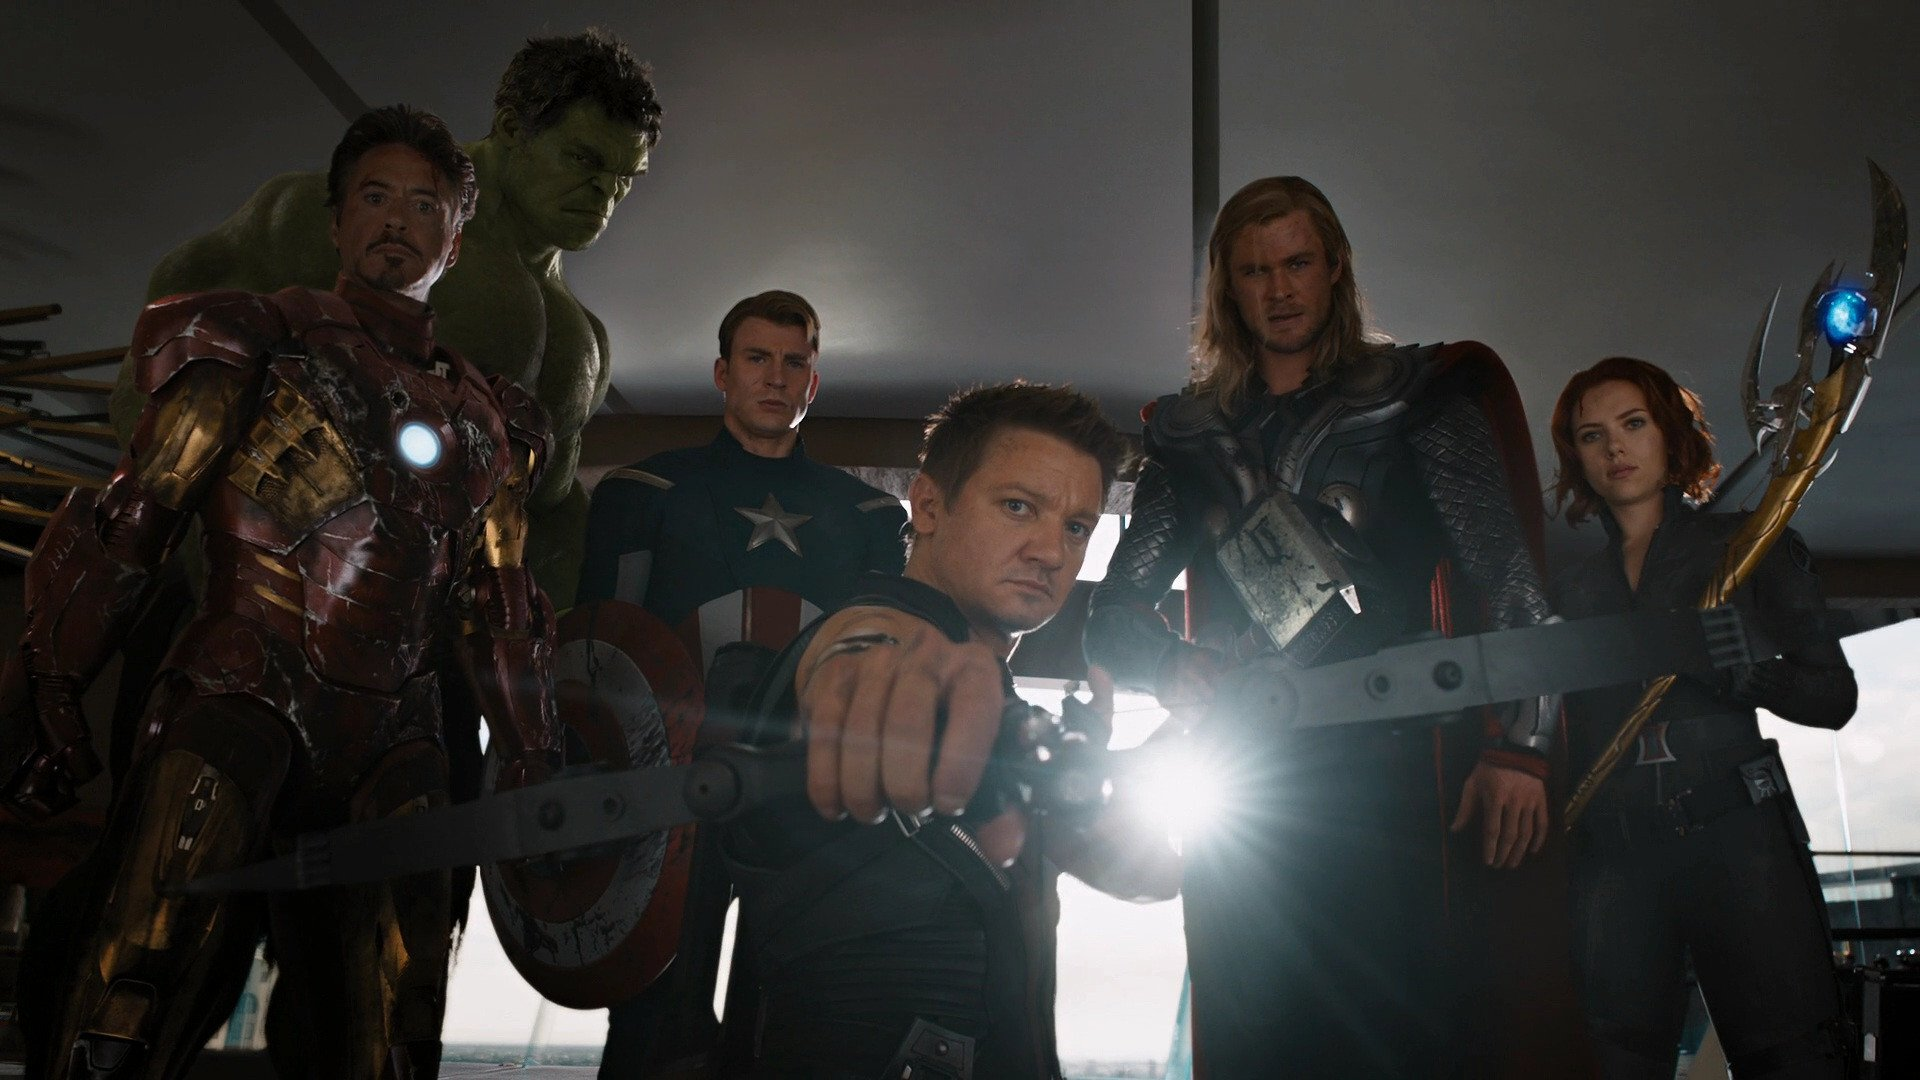 Understanding Screenwriting #95: The Avengers, Think Like a Man, Desperate Housewives, & More